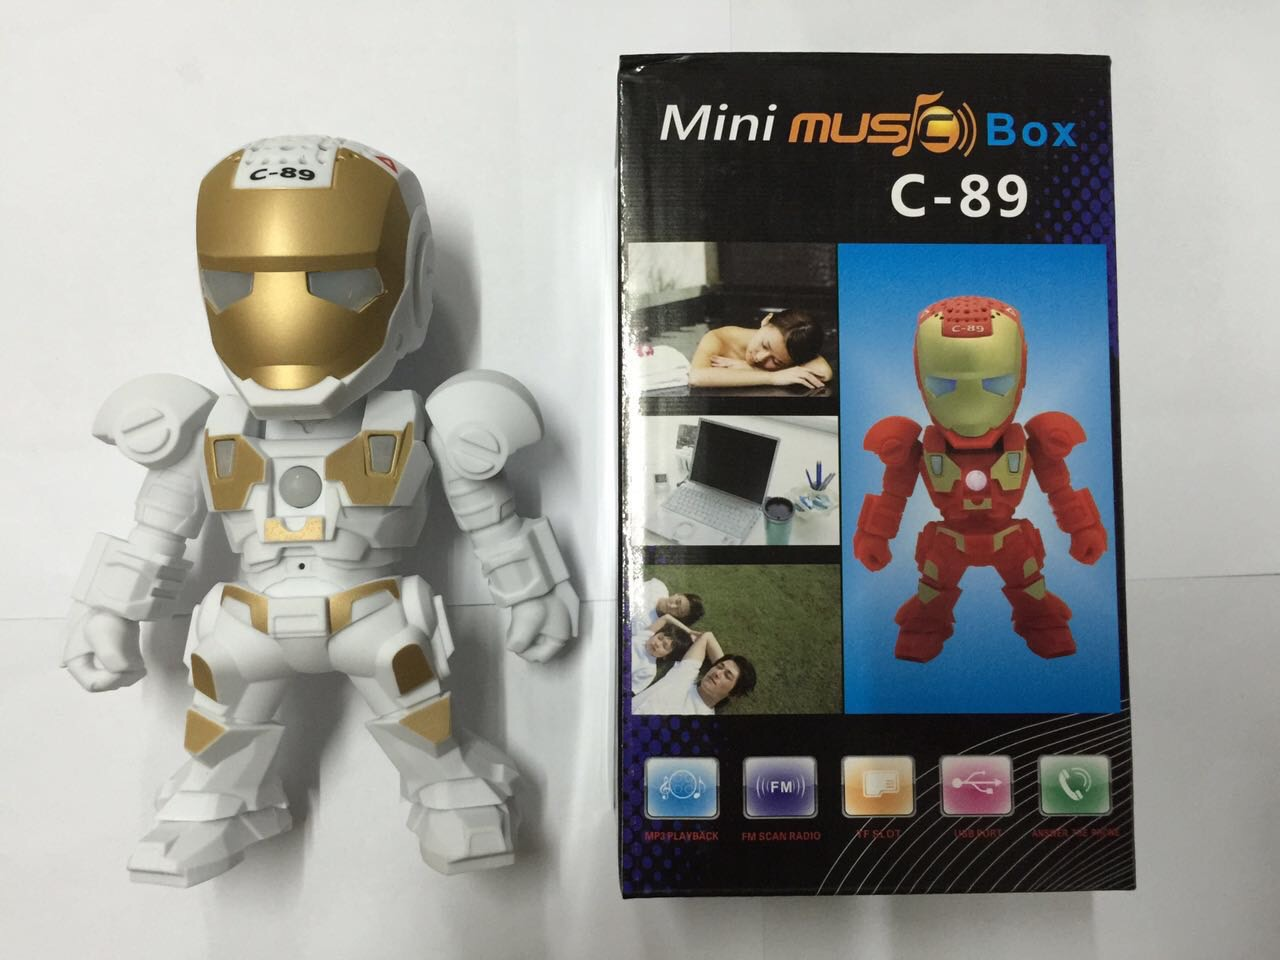 ลำโพง Bluetooth Mini Music Box C-89 Iron Man